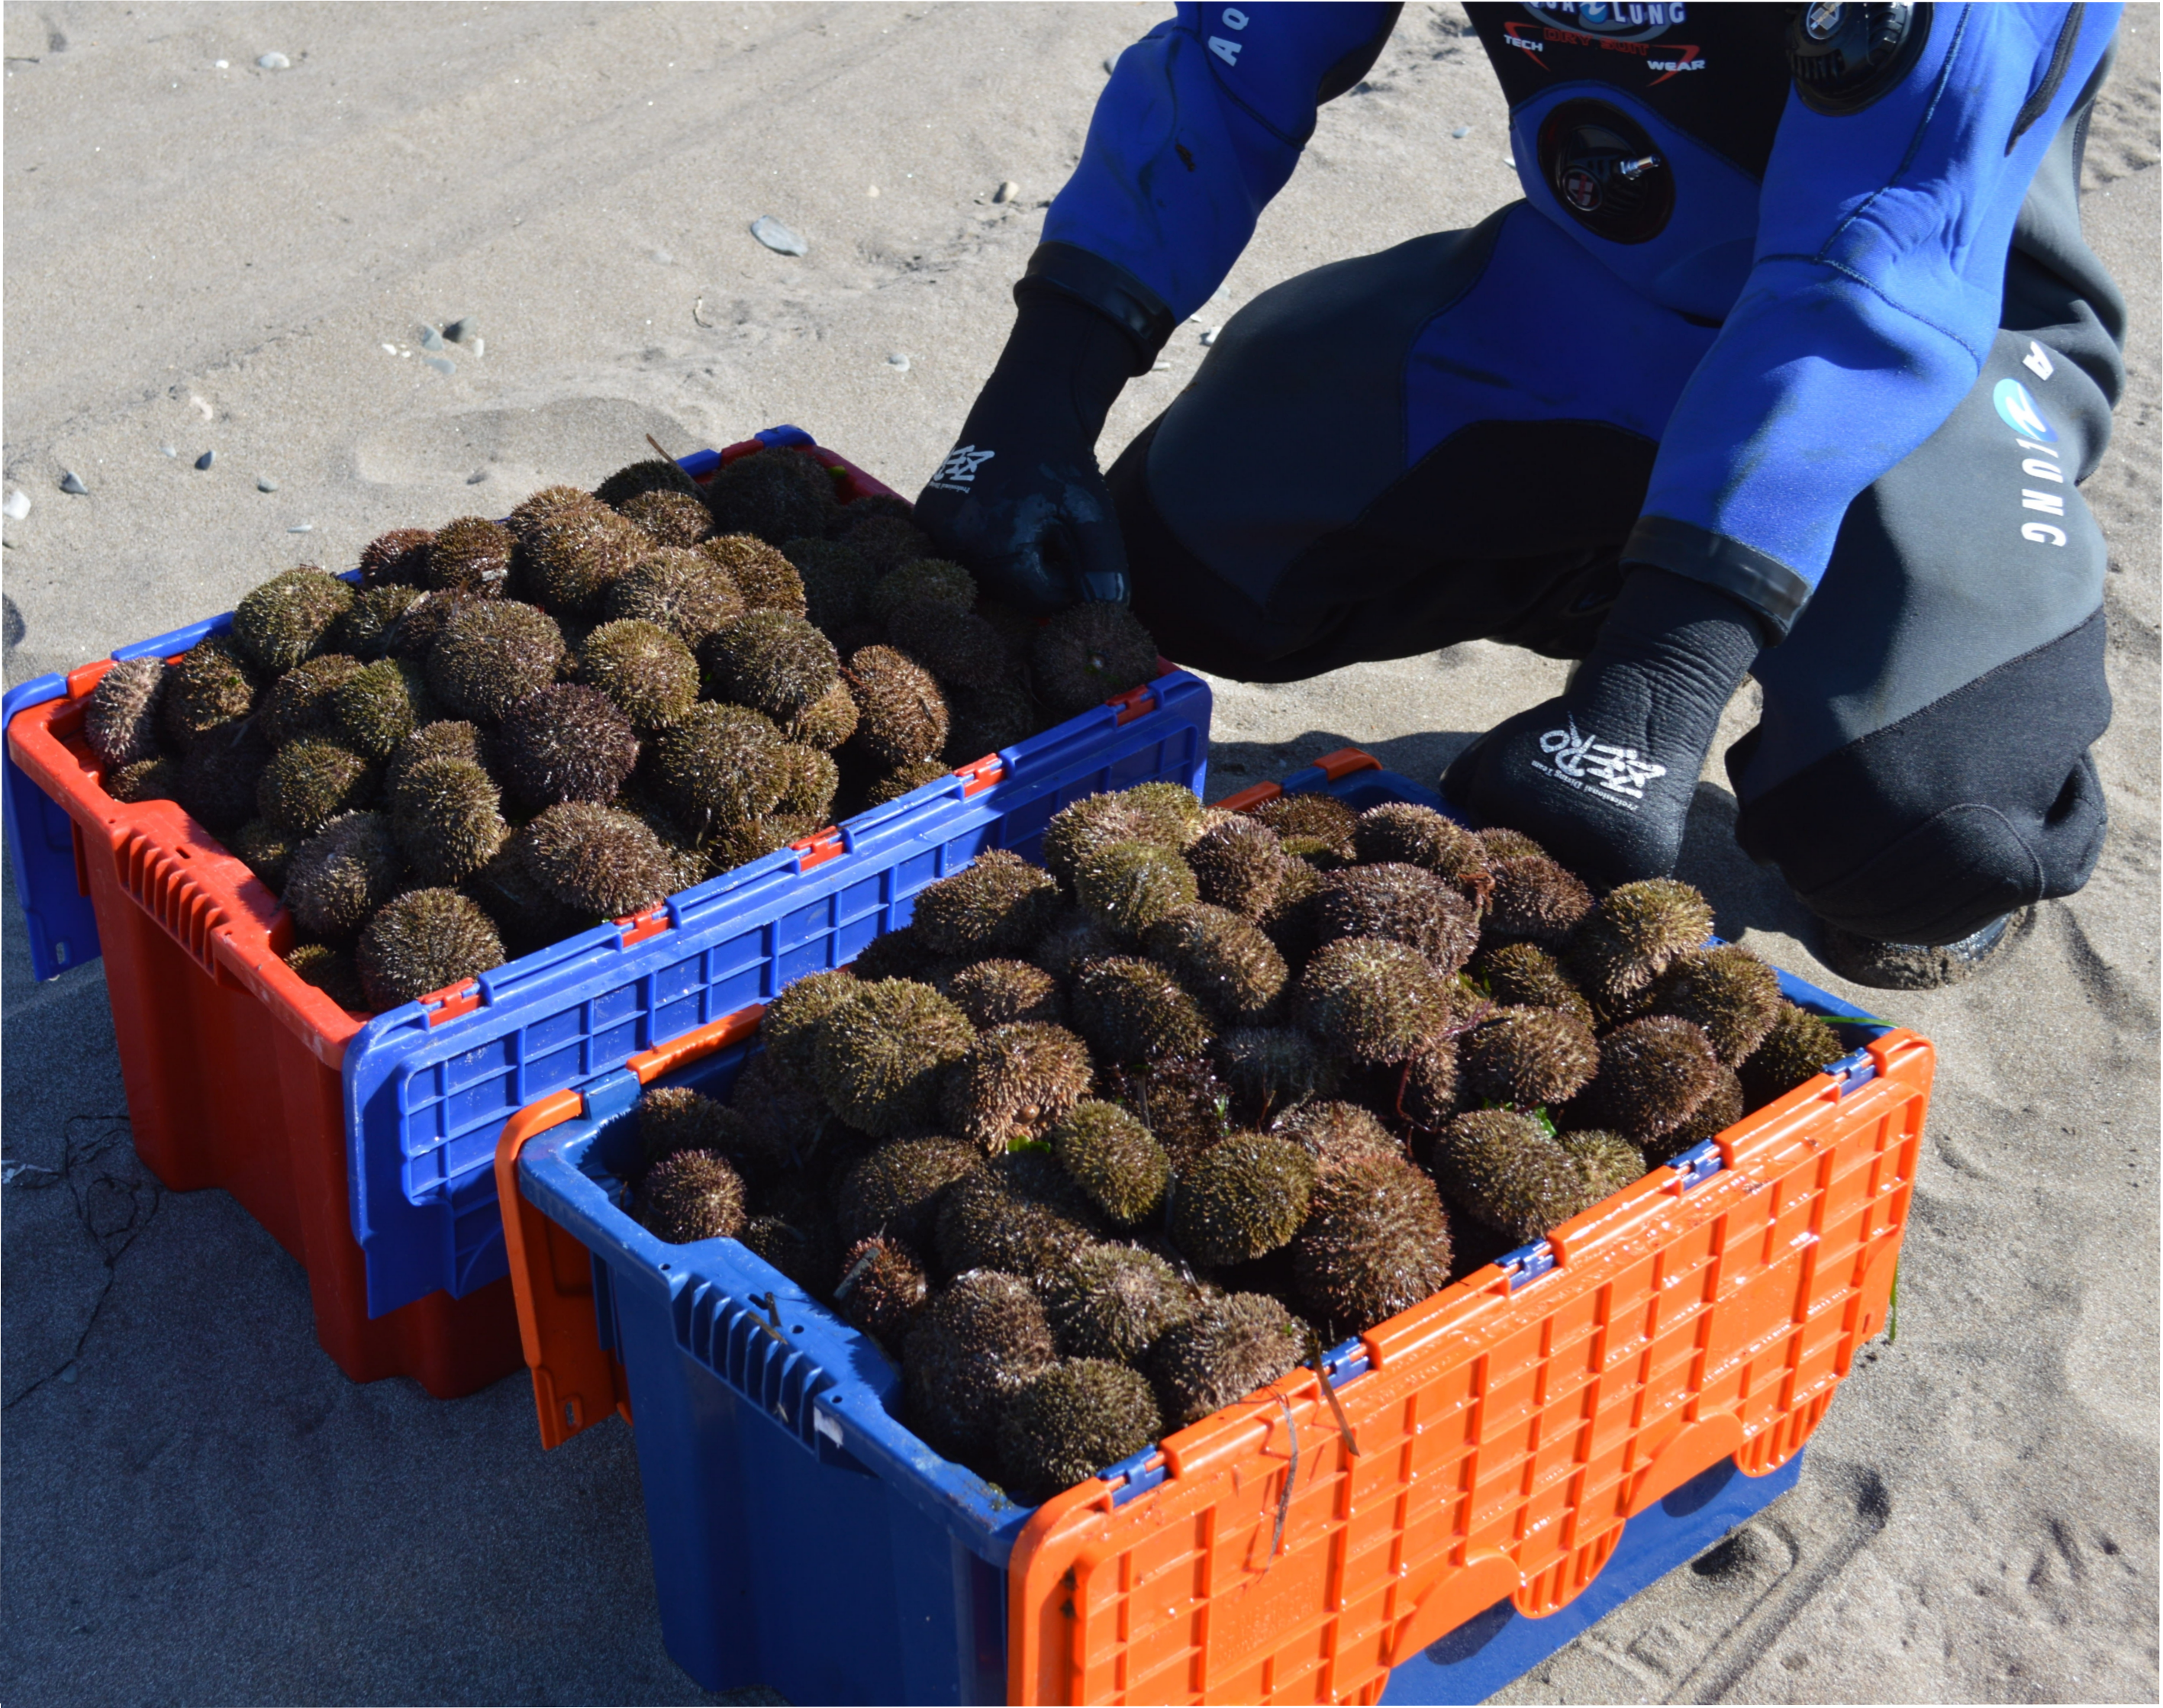 ExtractionProfessional divers catch sea urchin at a depth of more than 2 meters